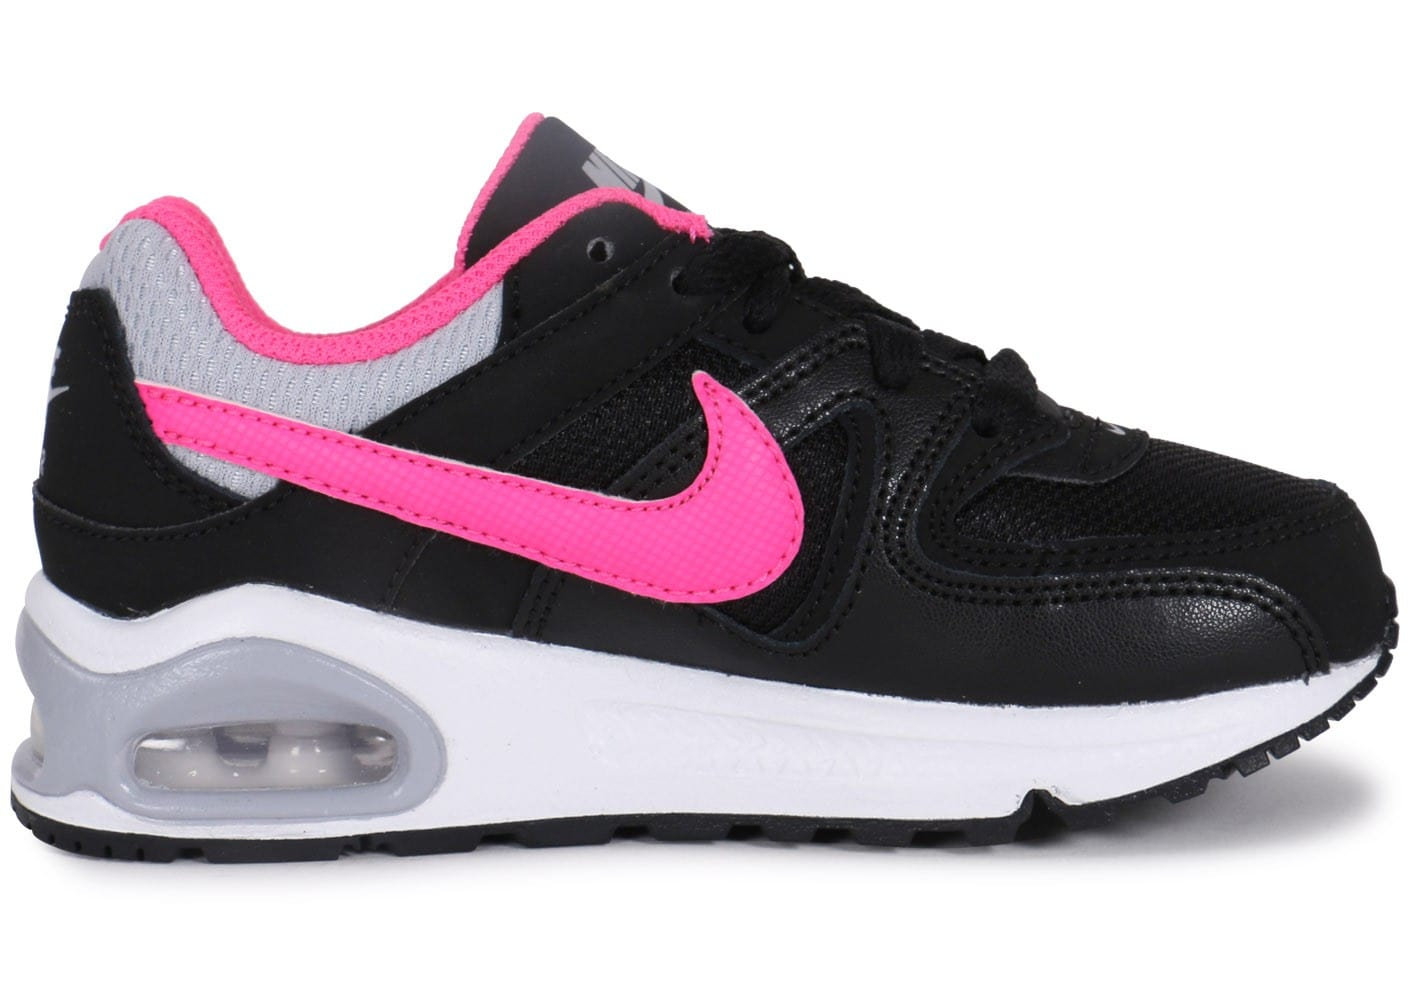 nike air max command noir et rose enfant chaussures chaussures chausport. Black Bedroom Furniture Sets. Home Design Ideas